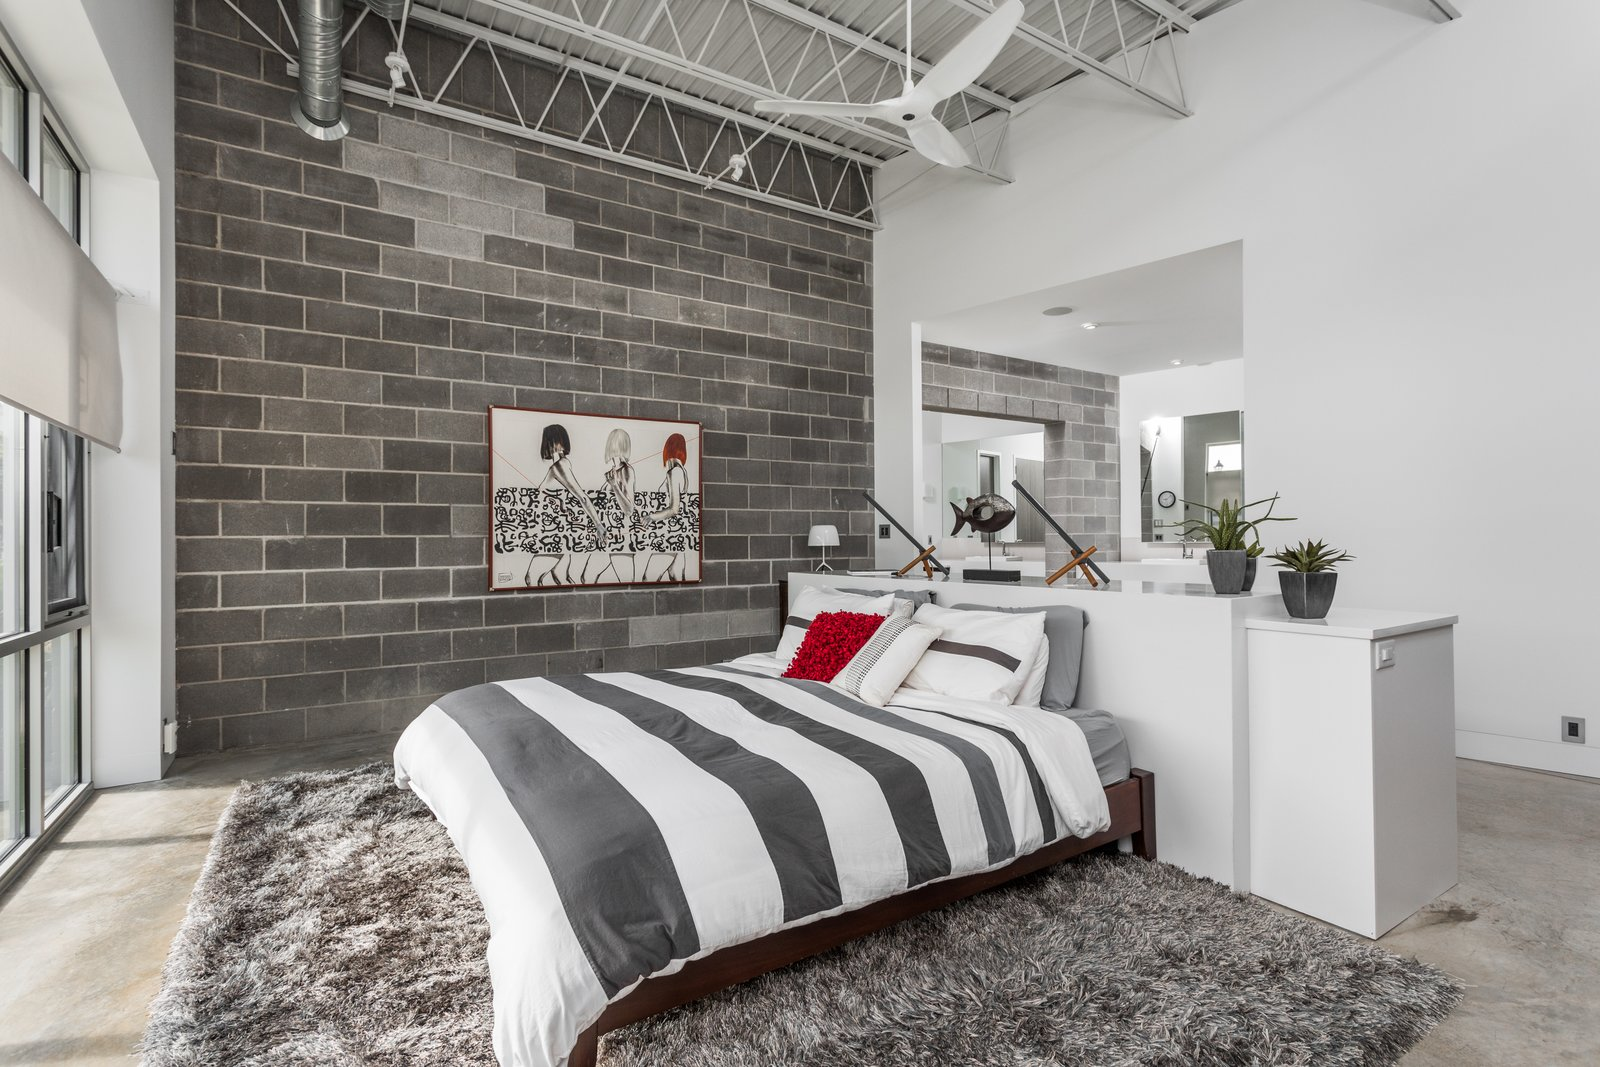 Bedroom, Bed, and Concrete Floor  Best Photos from A Converted Ink Factory in Downtown Indianapolis Asks $2.6M